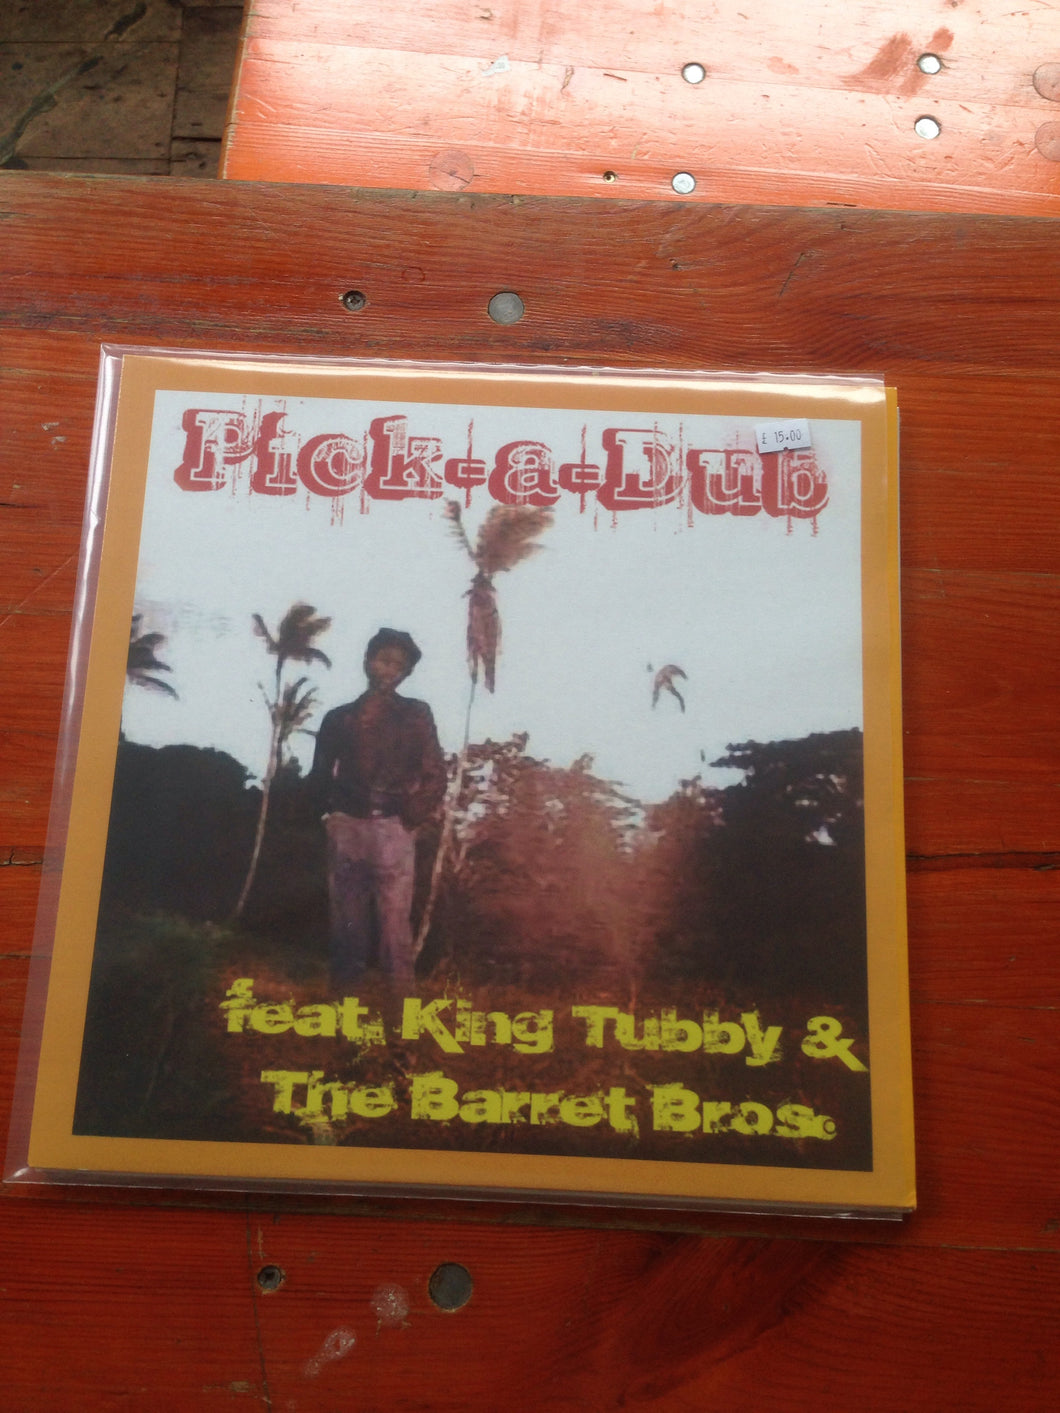 King Tubby and The Barret Brothers - Pick a Dub